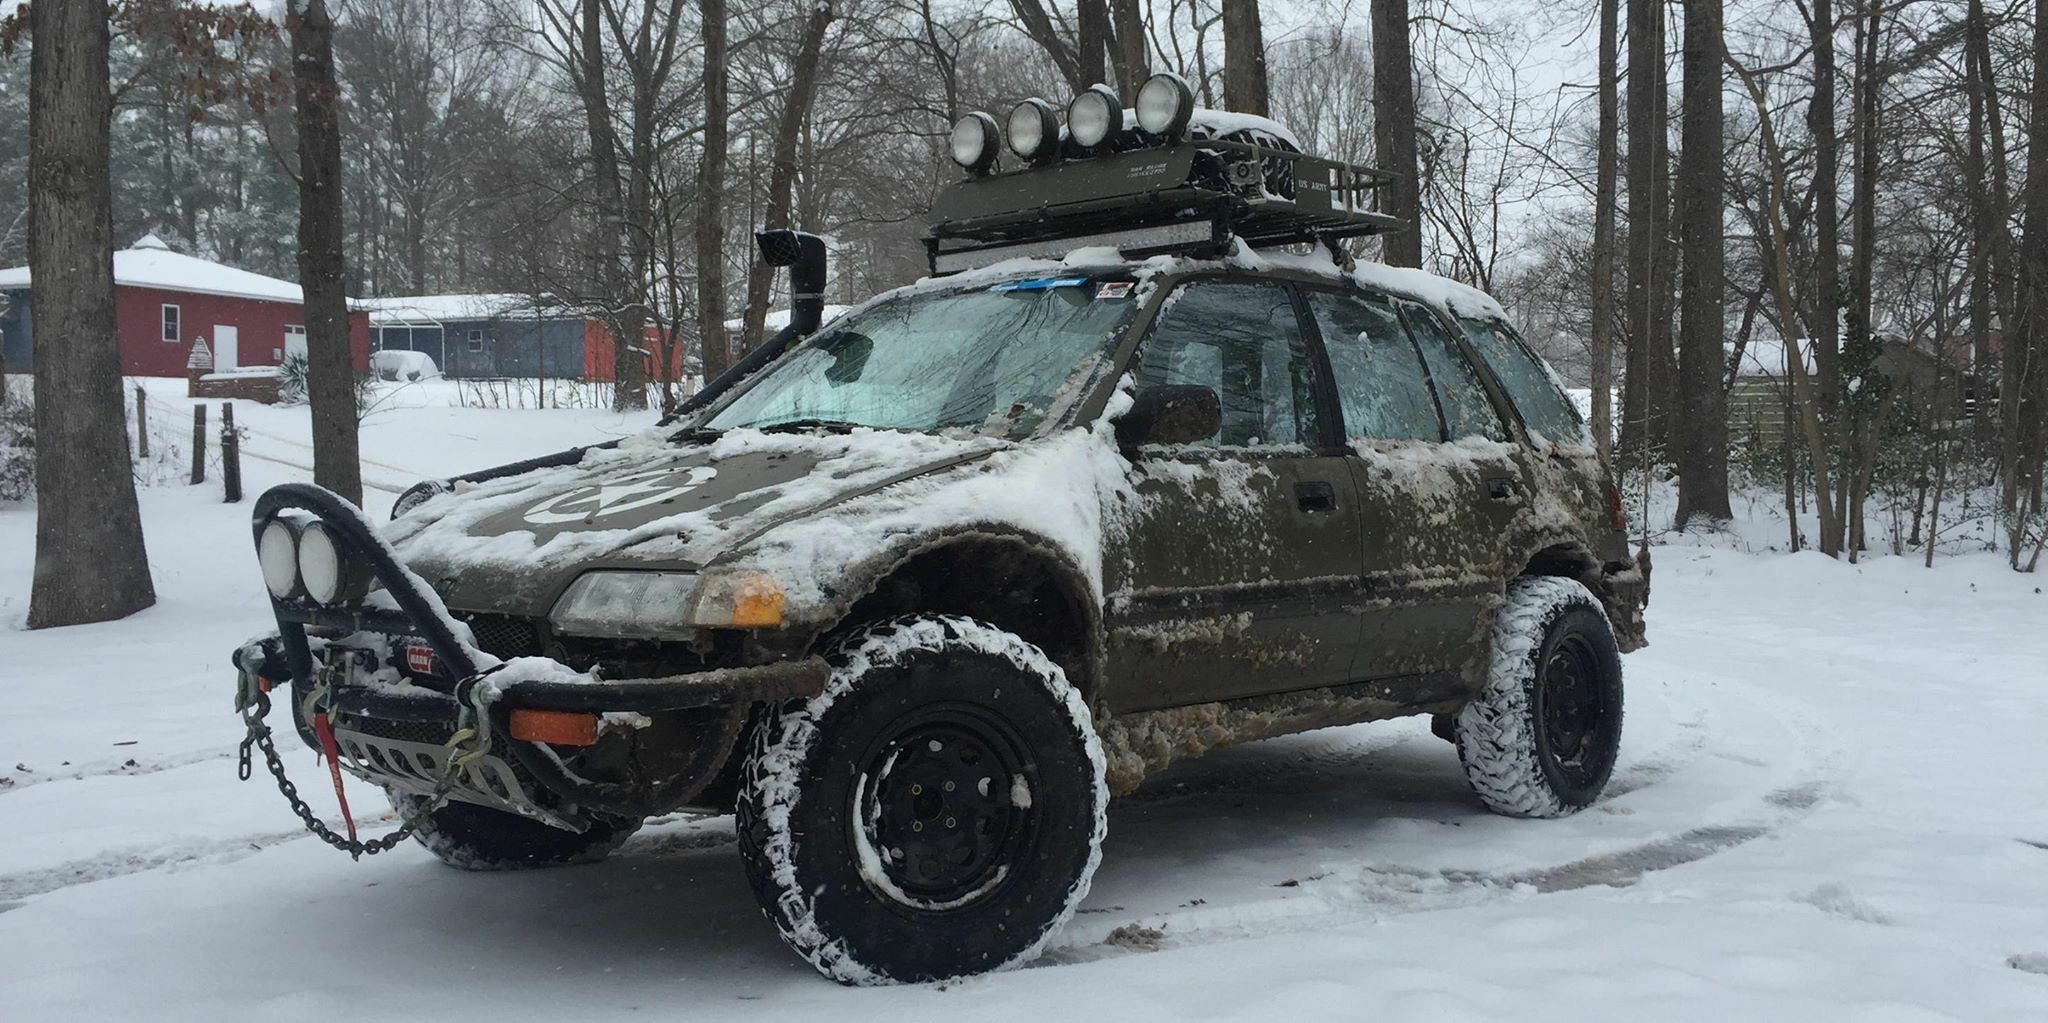 The War Wagon Is A Lifted Honda Civic 4x4